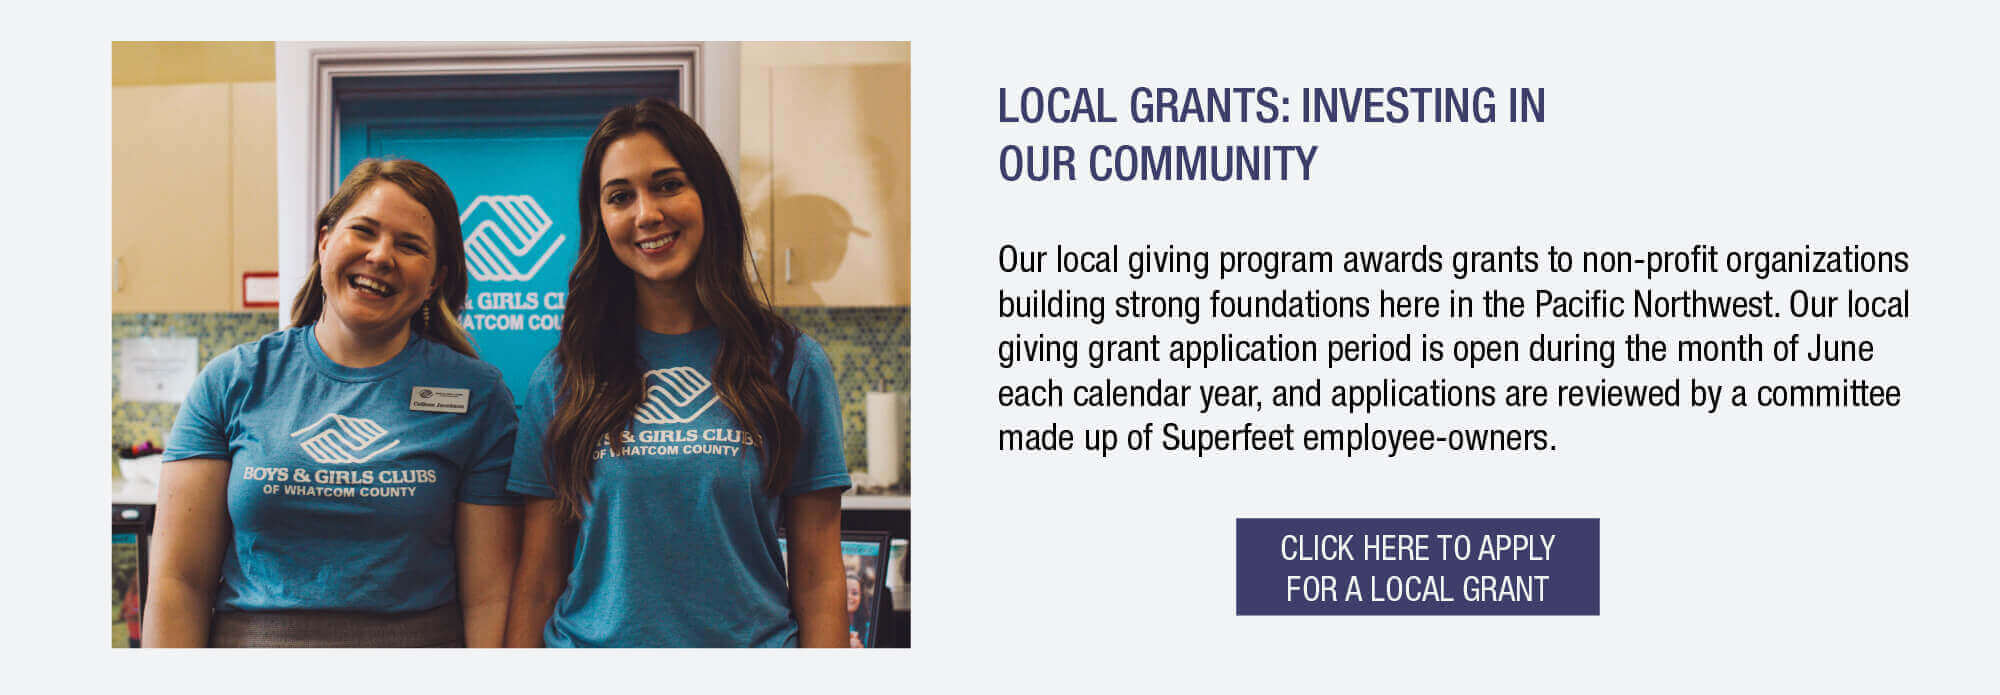 Our local giving program awards grants to non-profit organizations building strong foundations here in the Pacific Northwest. Our local giving grant application period is open during the month of June each calendar year.